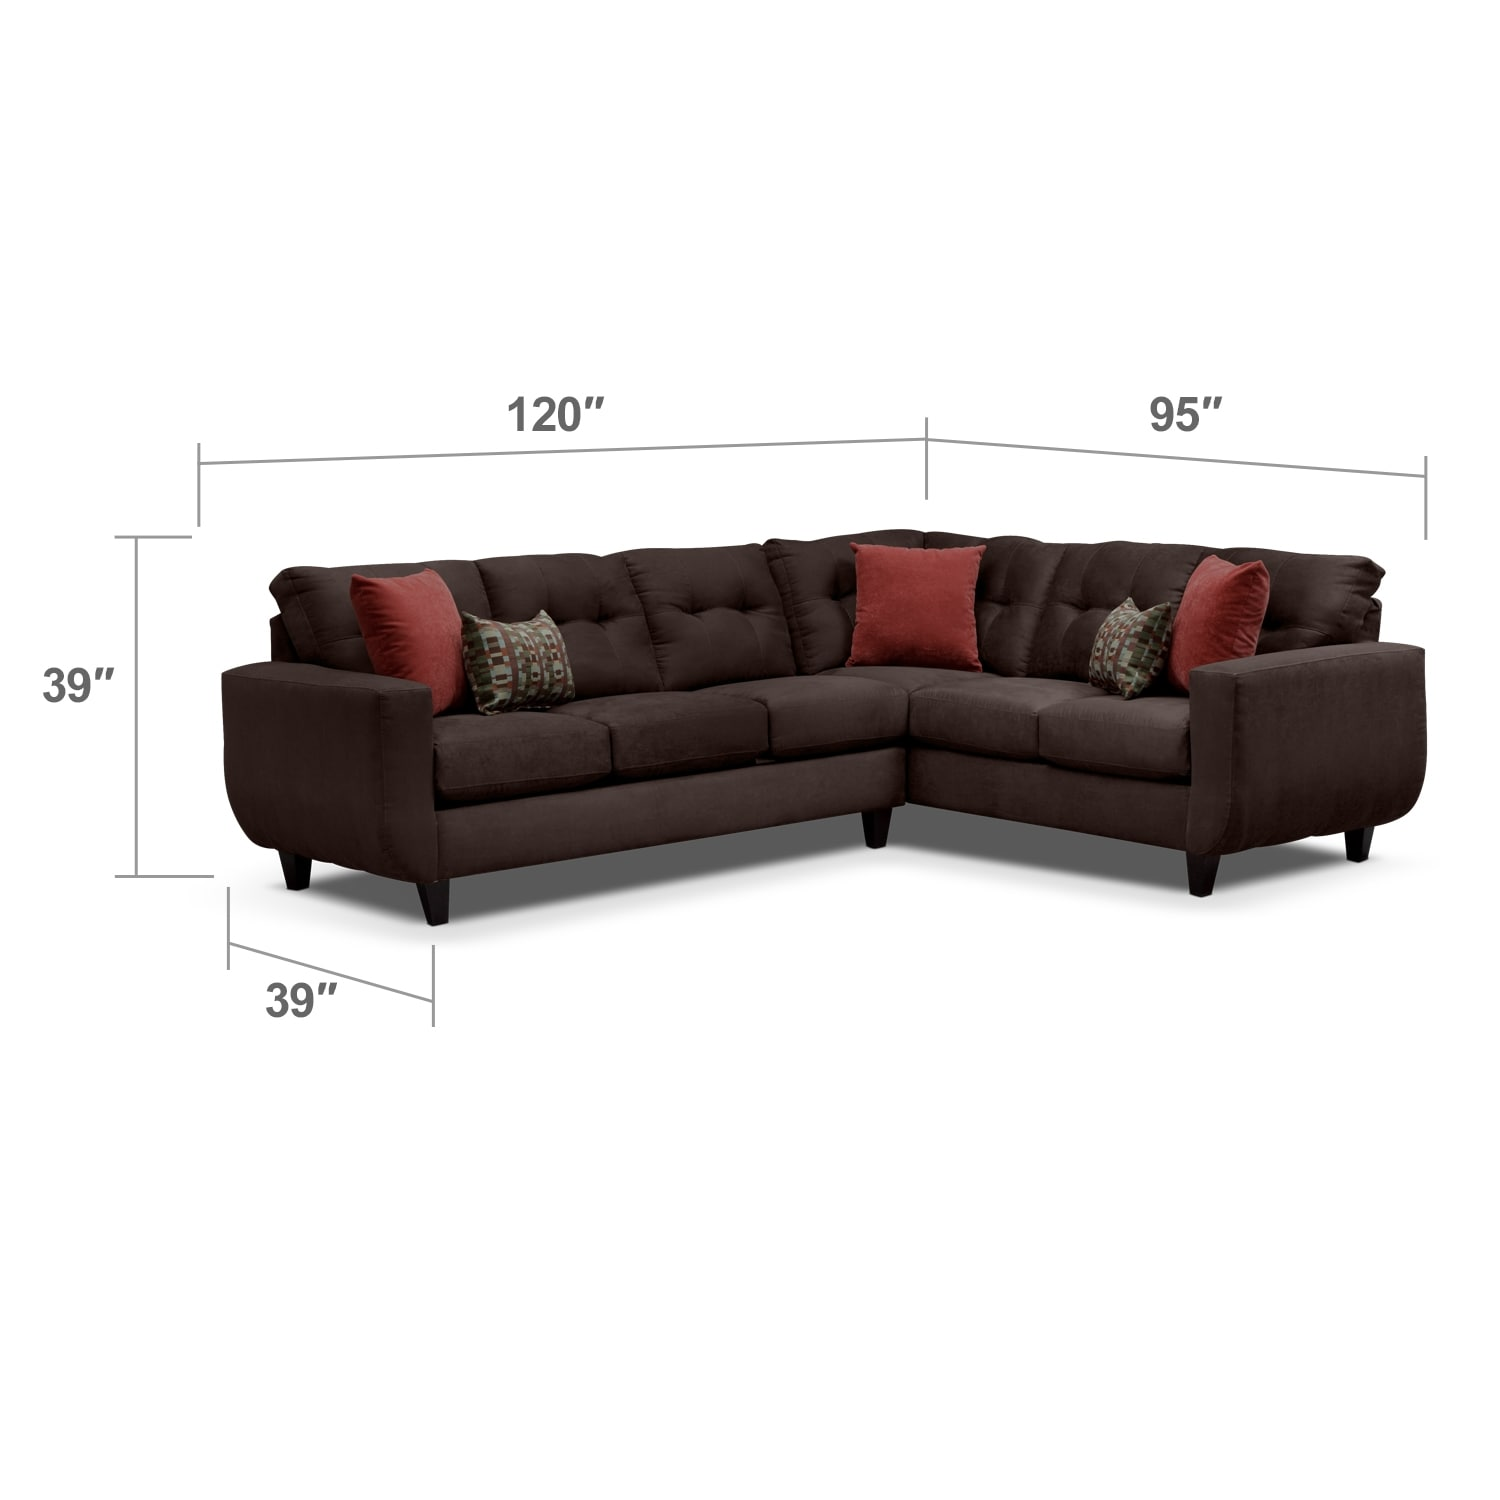 Living Room Ideas To Steal For Comforting Vibe Found In: West Village 2-Piece Sectional - Chocolate